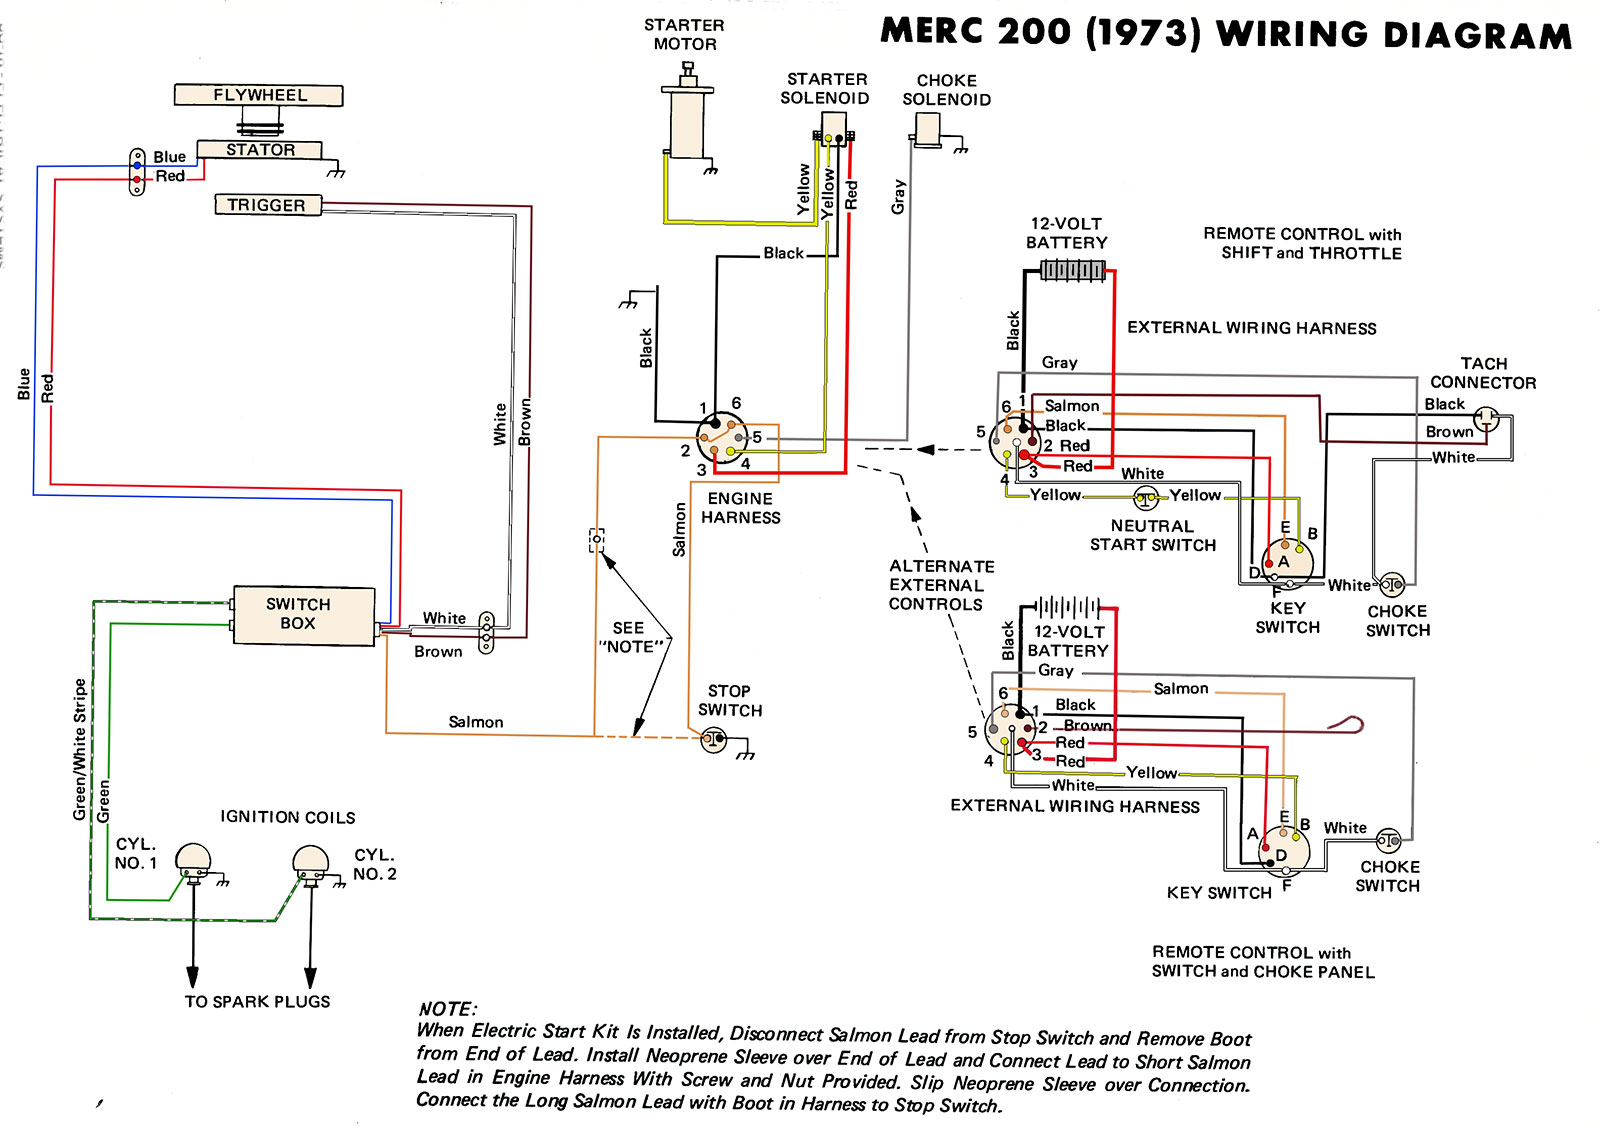 20HP_73?resize\\\\\\\\\\\\\\\=665%2C470 free wiring diagrams weebly 2004 lincoln wiring diagrams  at gsmx.co